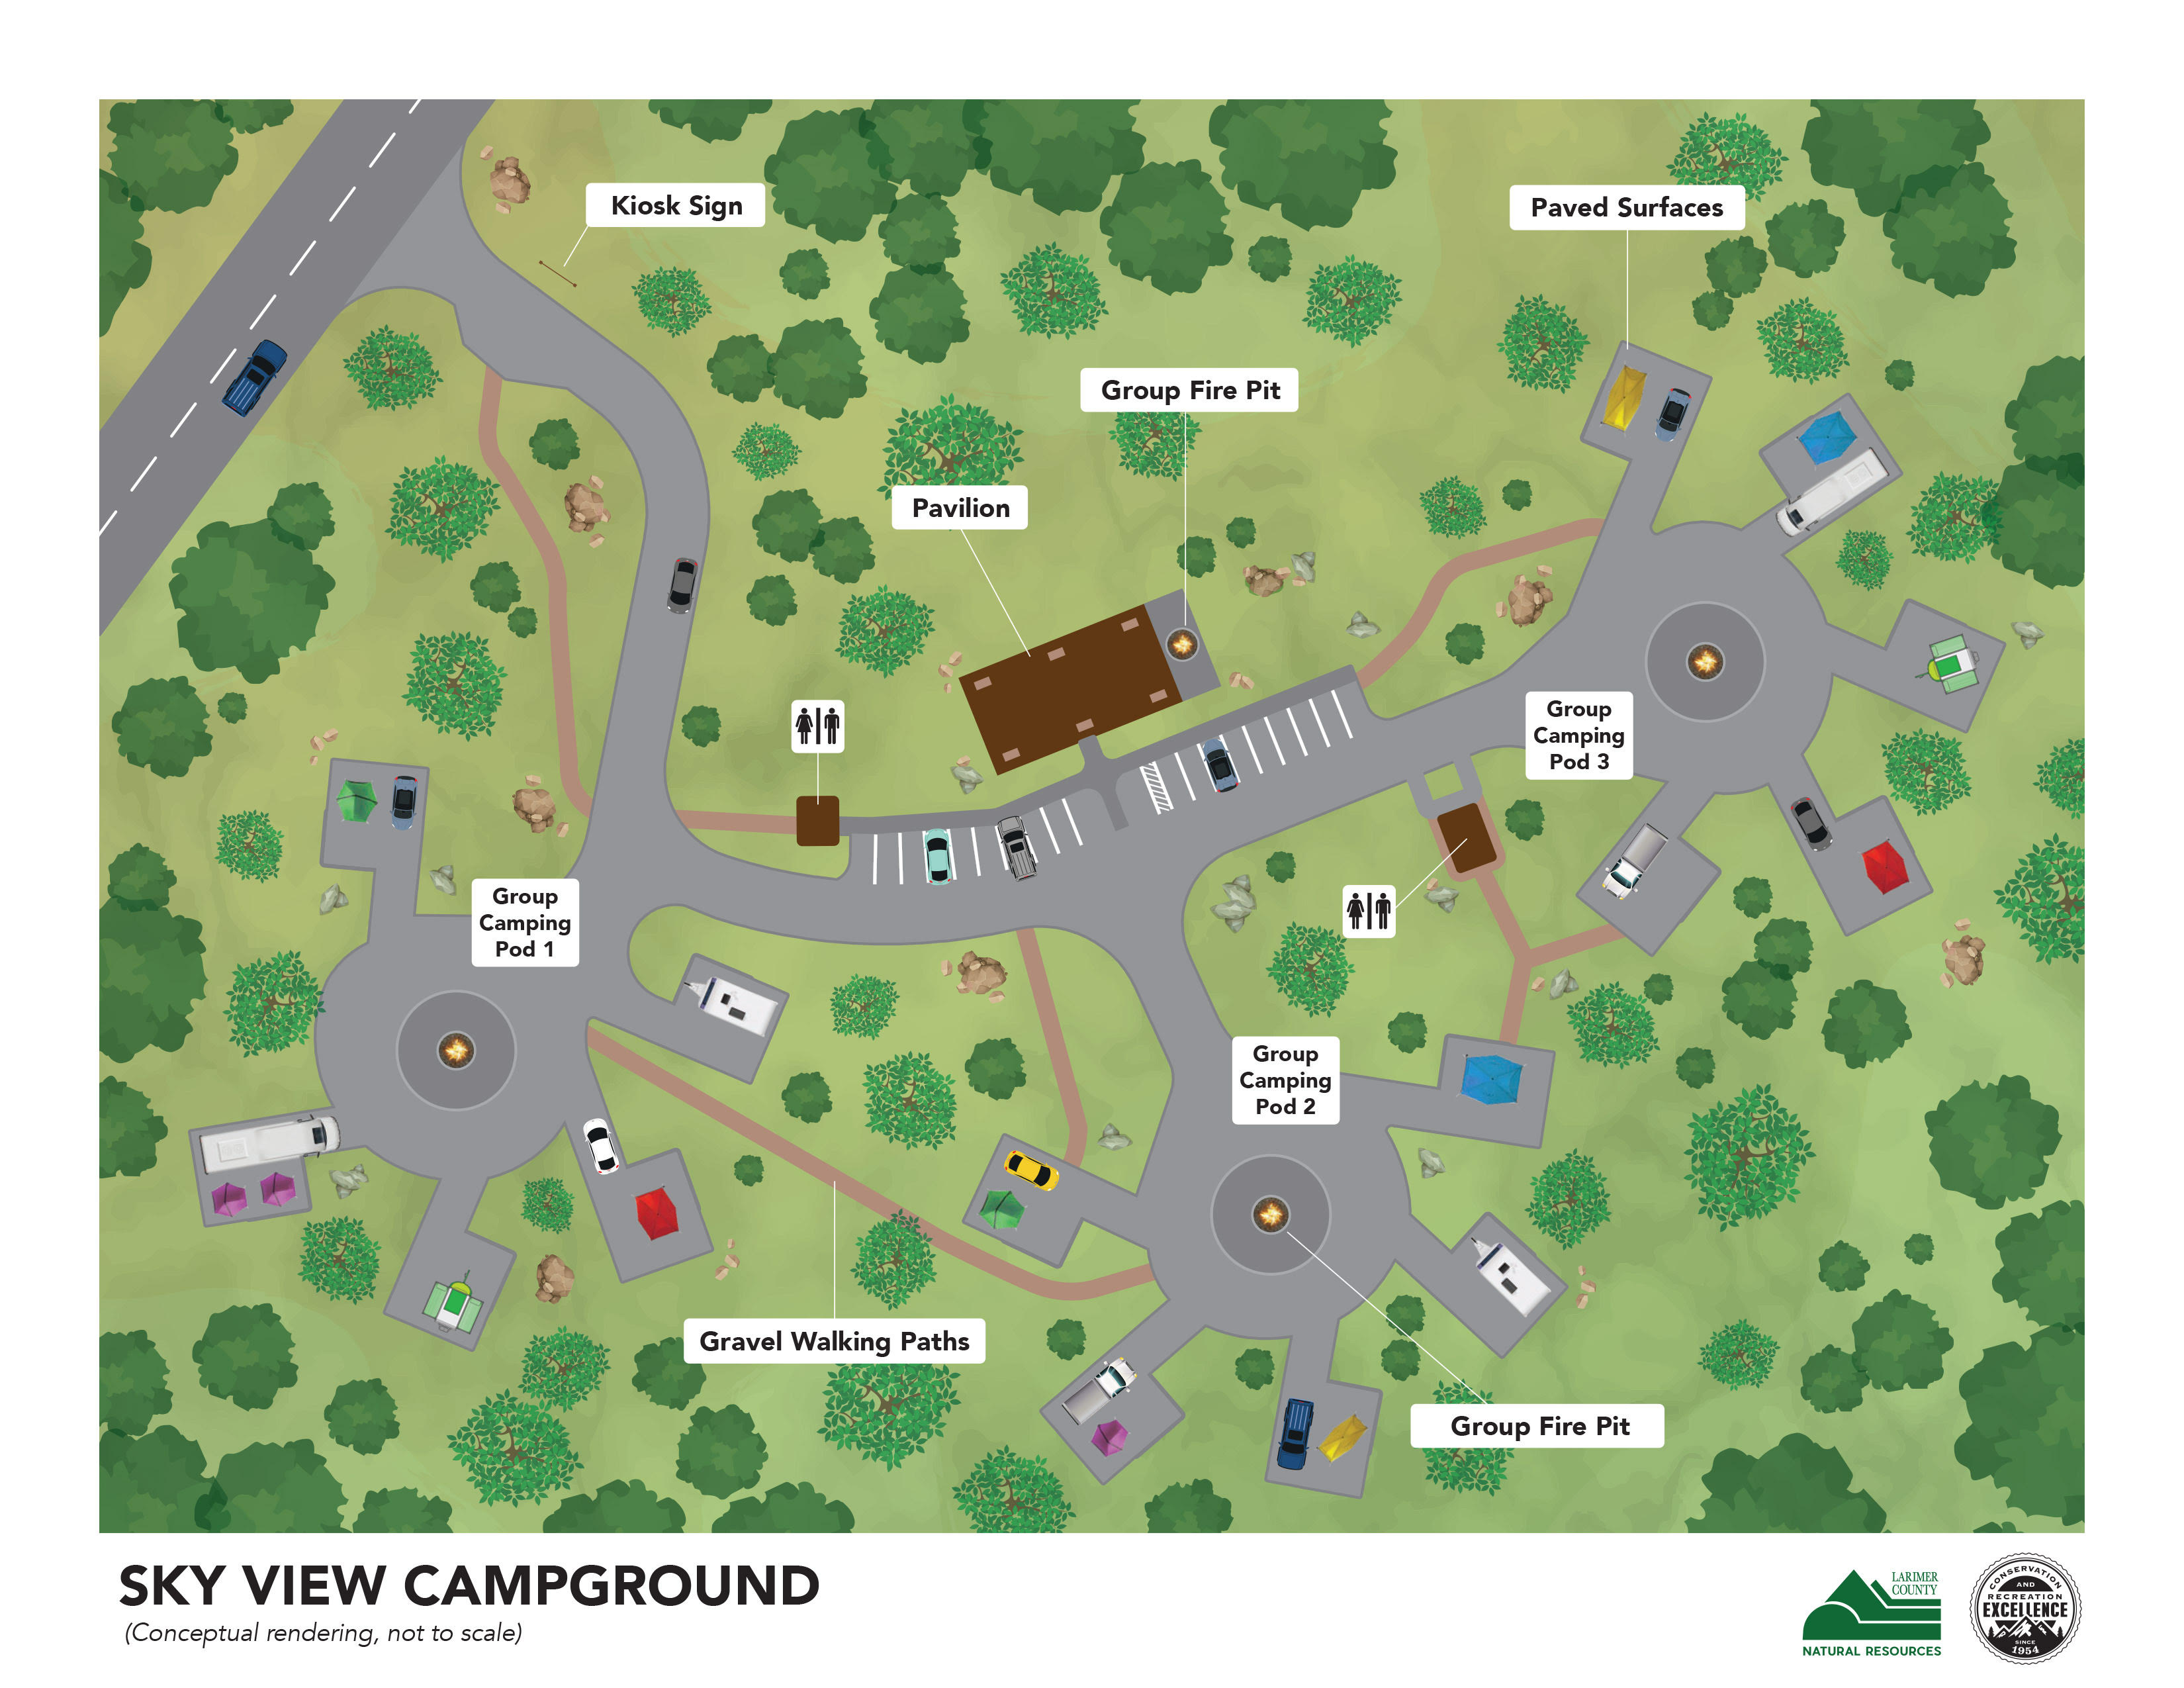 Image 1: Conceptual overhead view of Sky View Campground